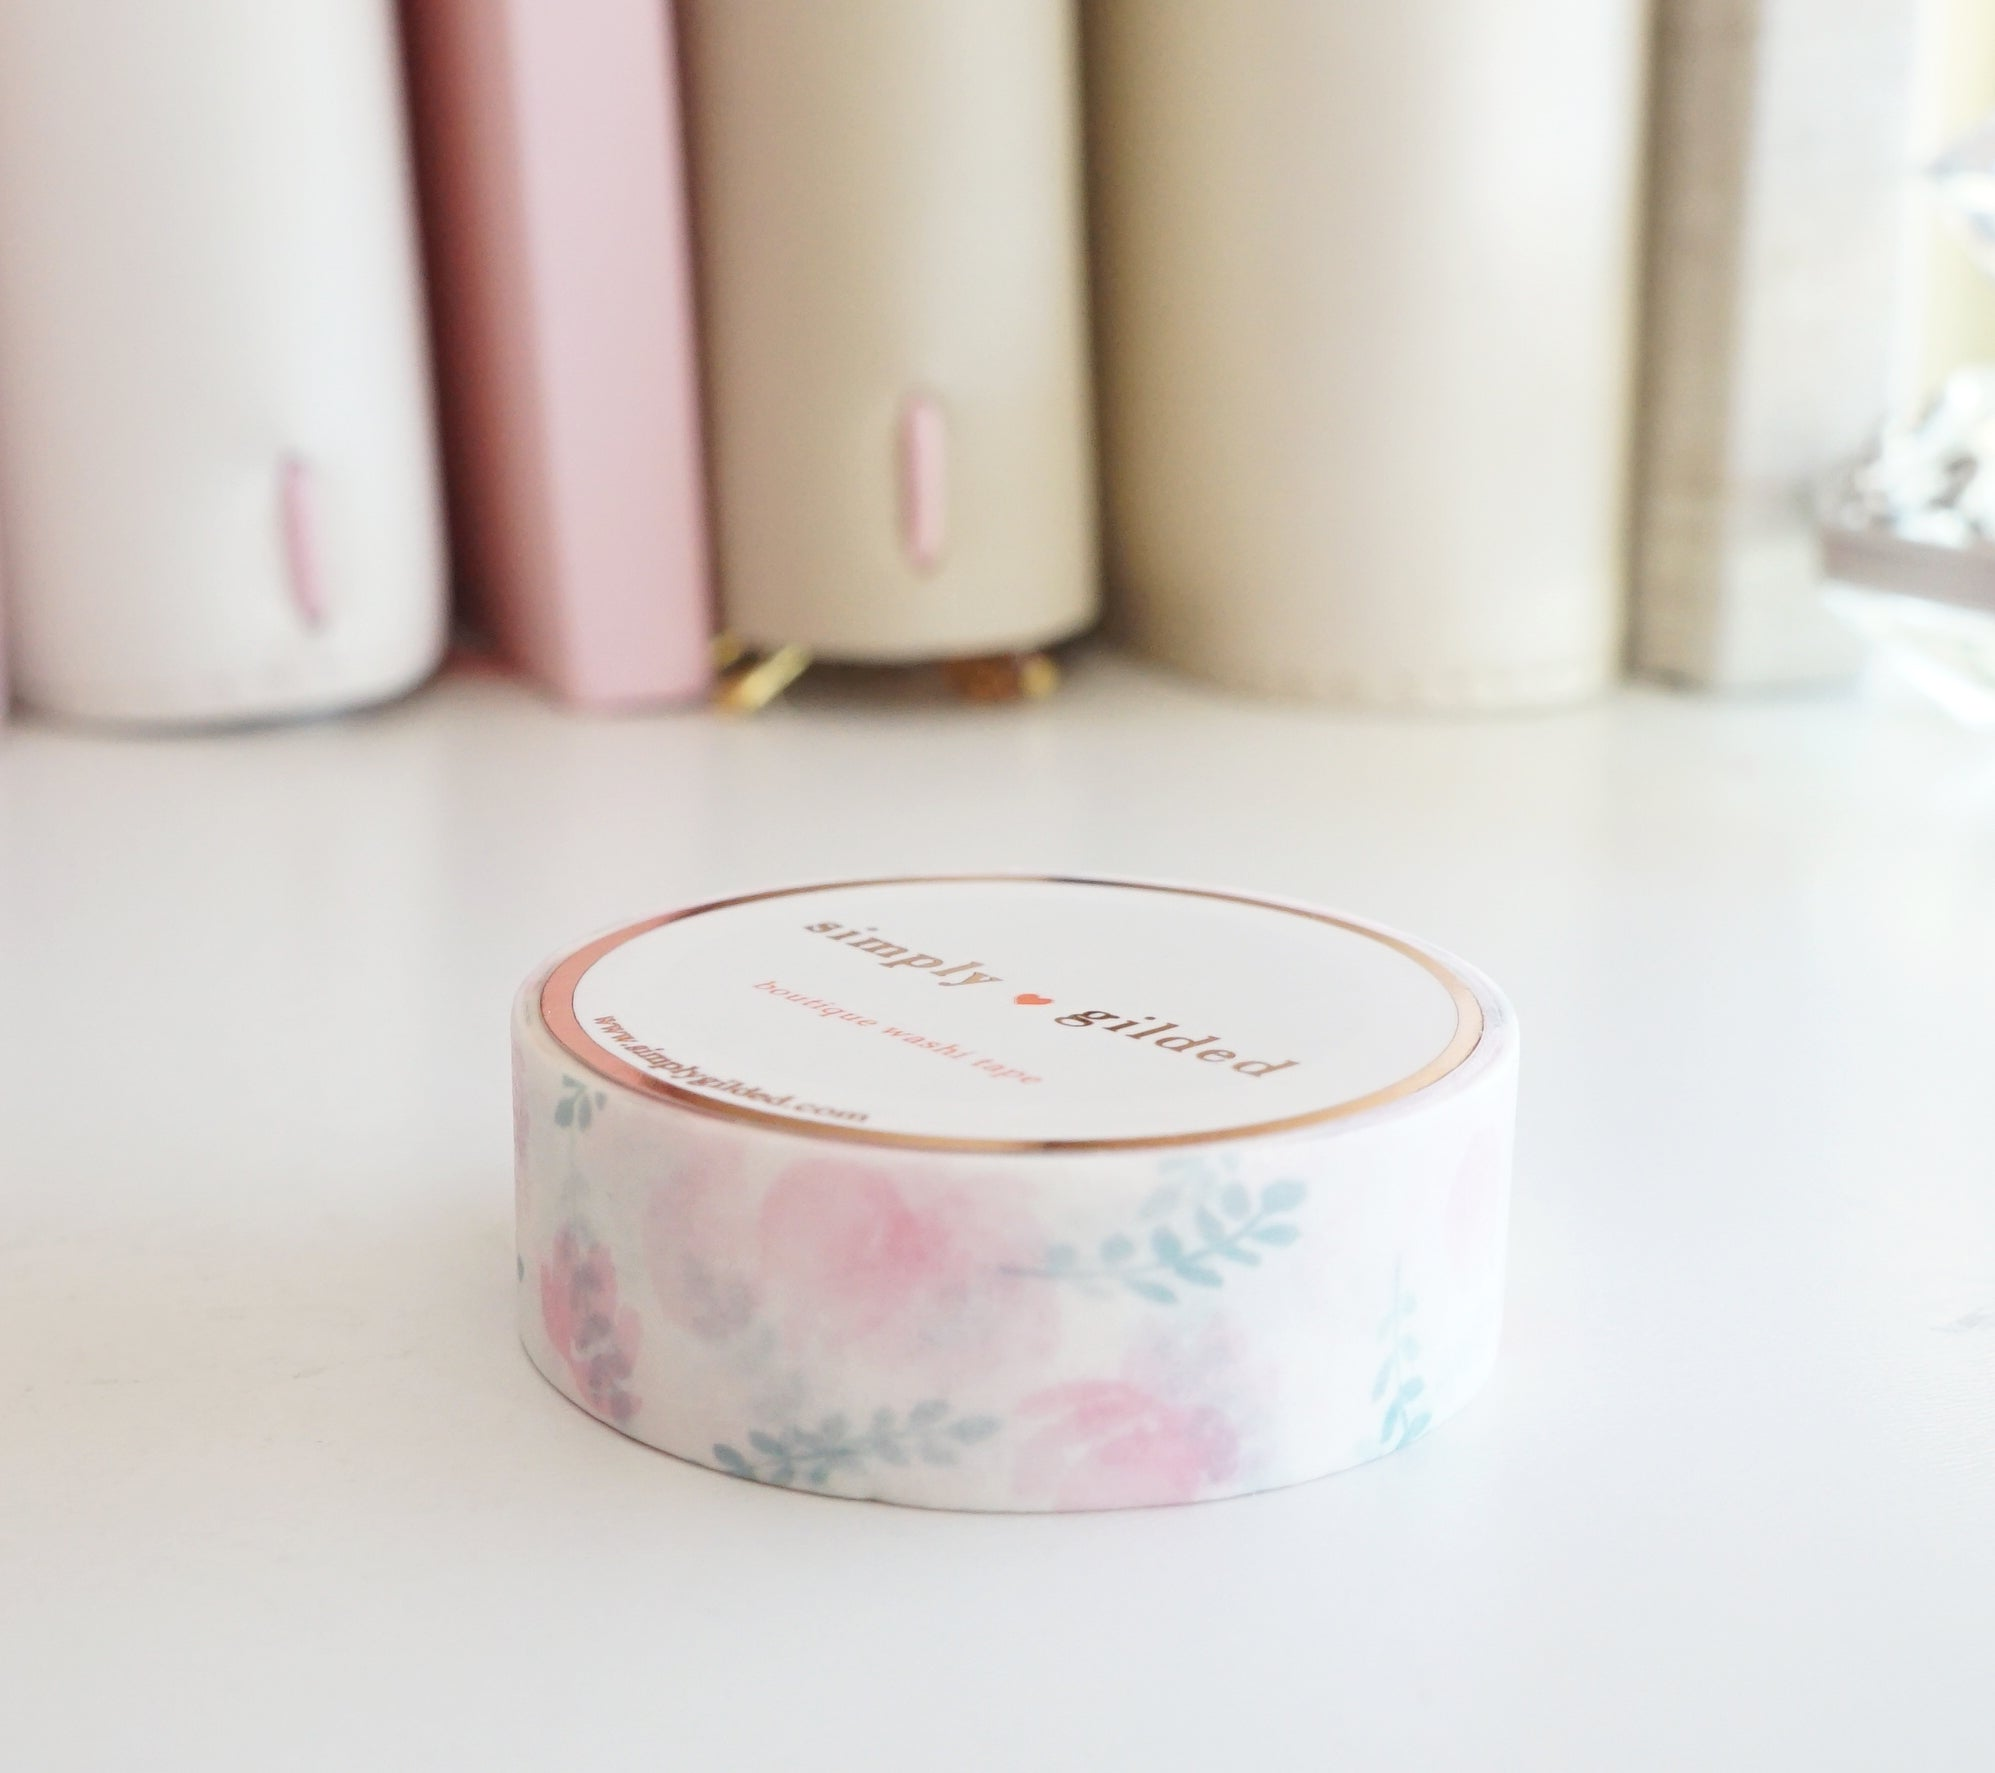 WASHI TAPE 15mm - Simplicity TULIP (Mystery Monday)